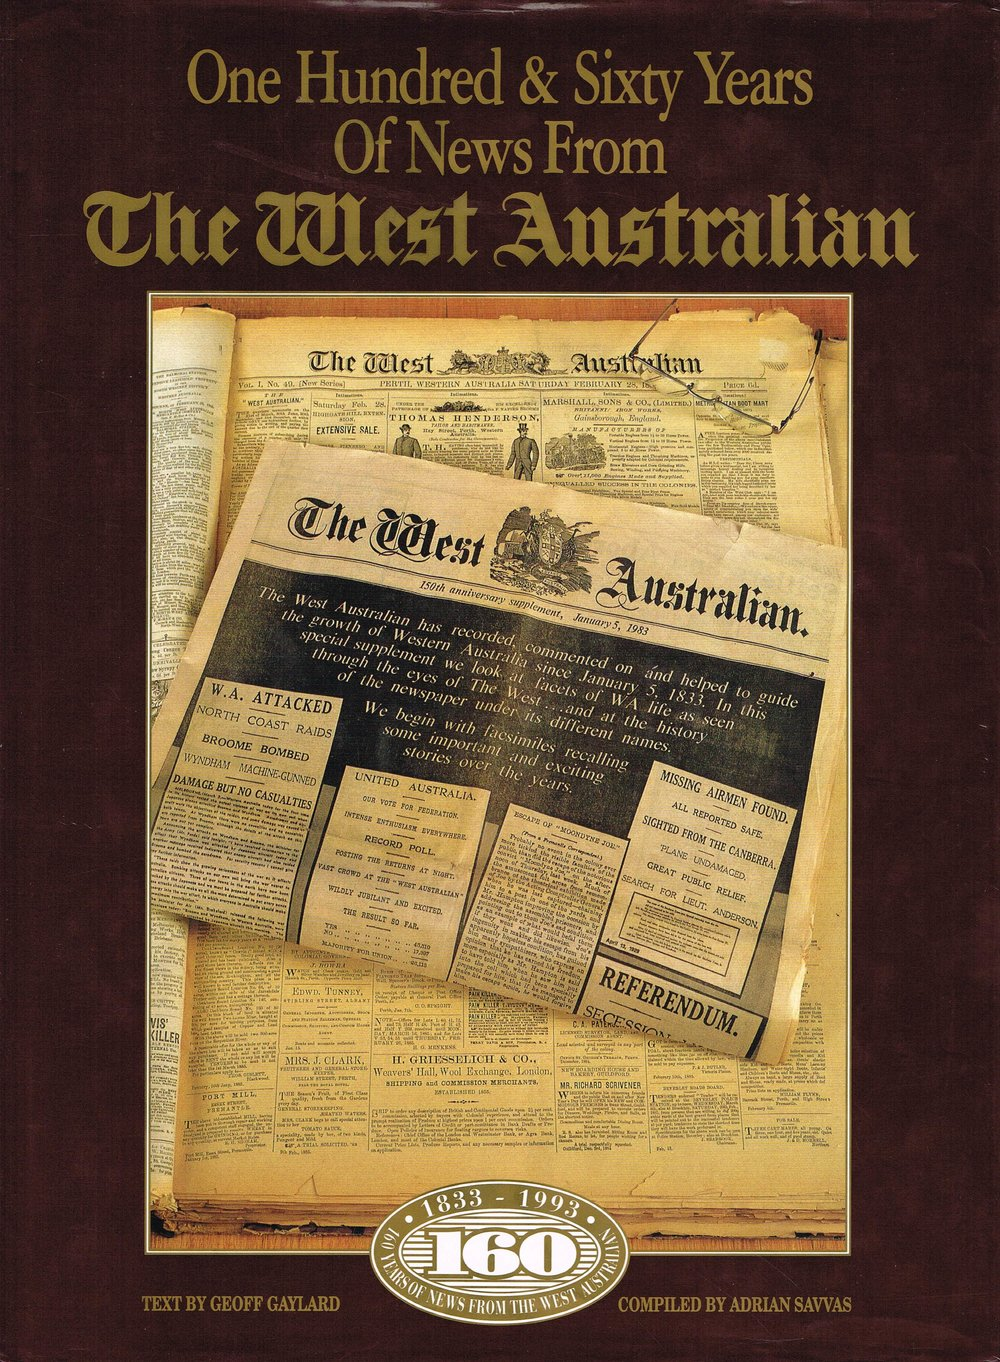 One+Hundred+&+Sixty+Years+of+News+from+The+West+Australian.jpg